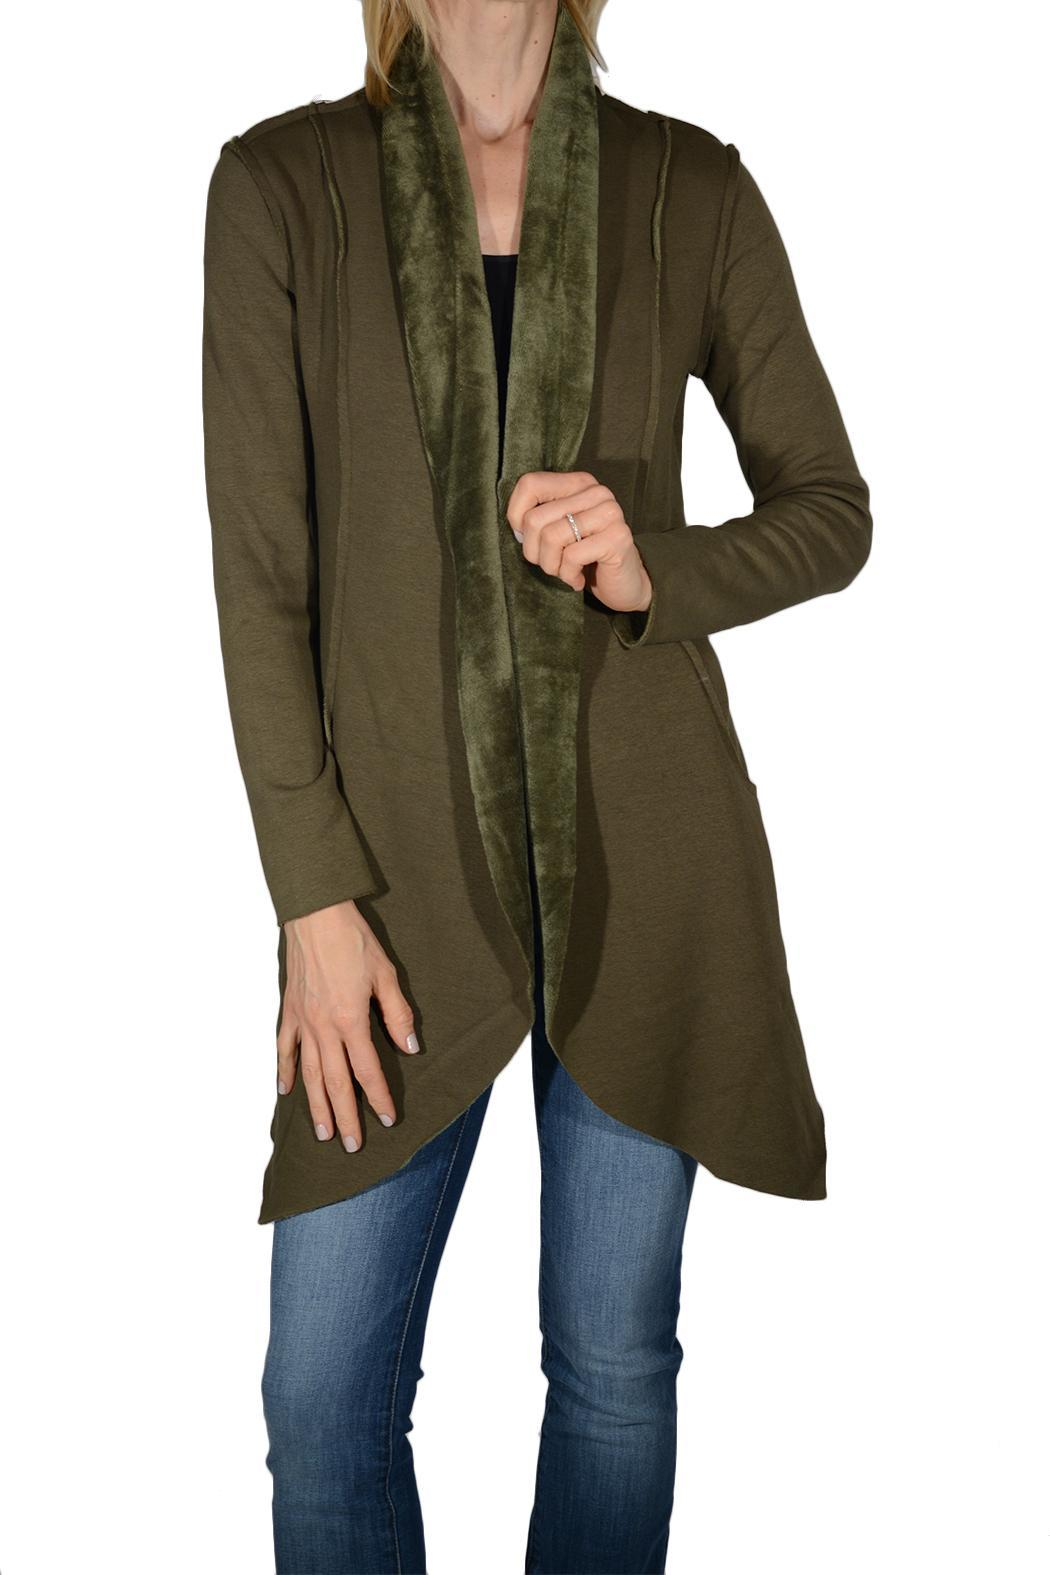 Rain-Emme Fly Away Cardigan from Denver by Marcella's — Shoptiques